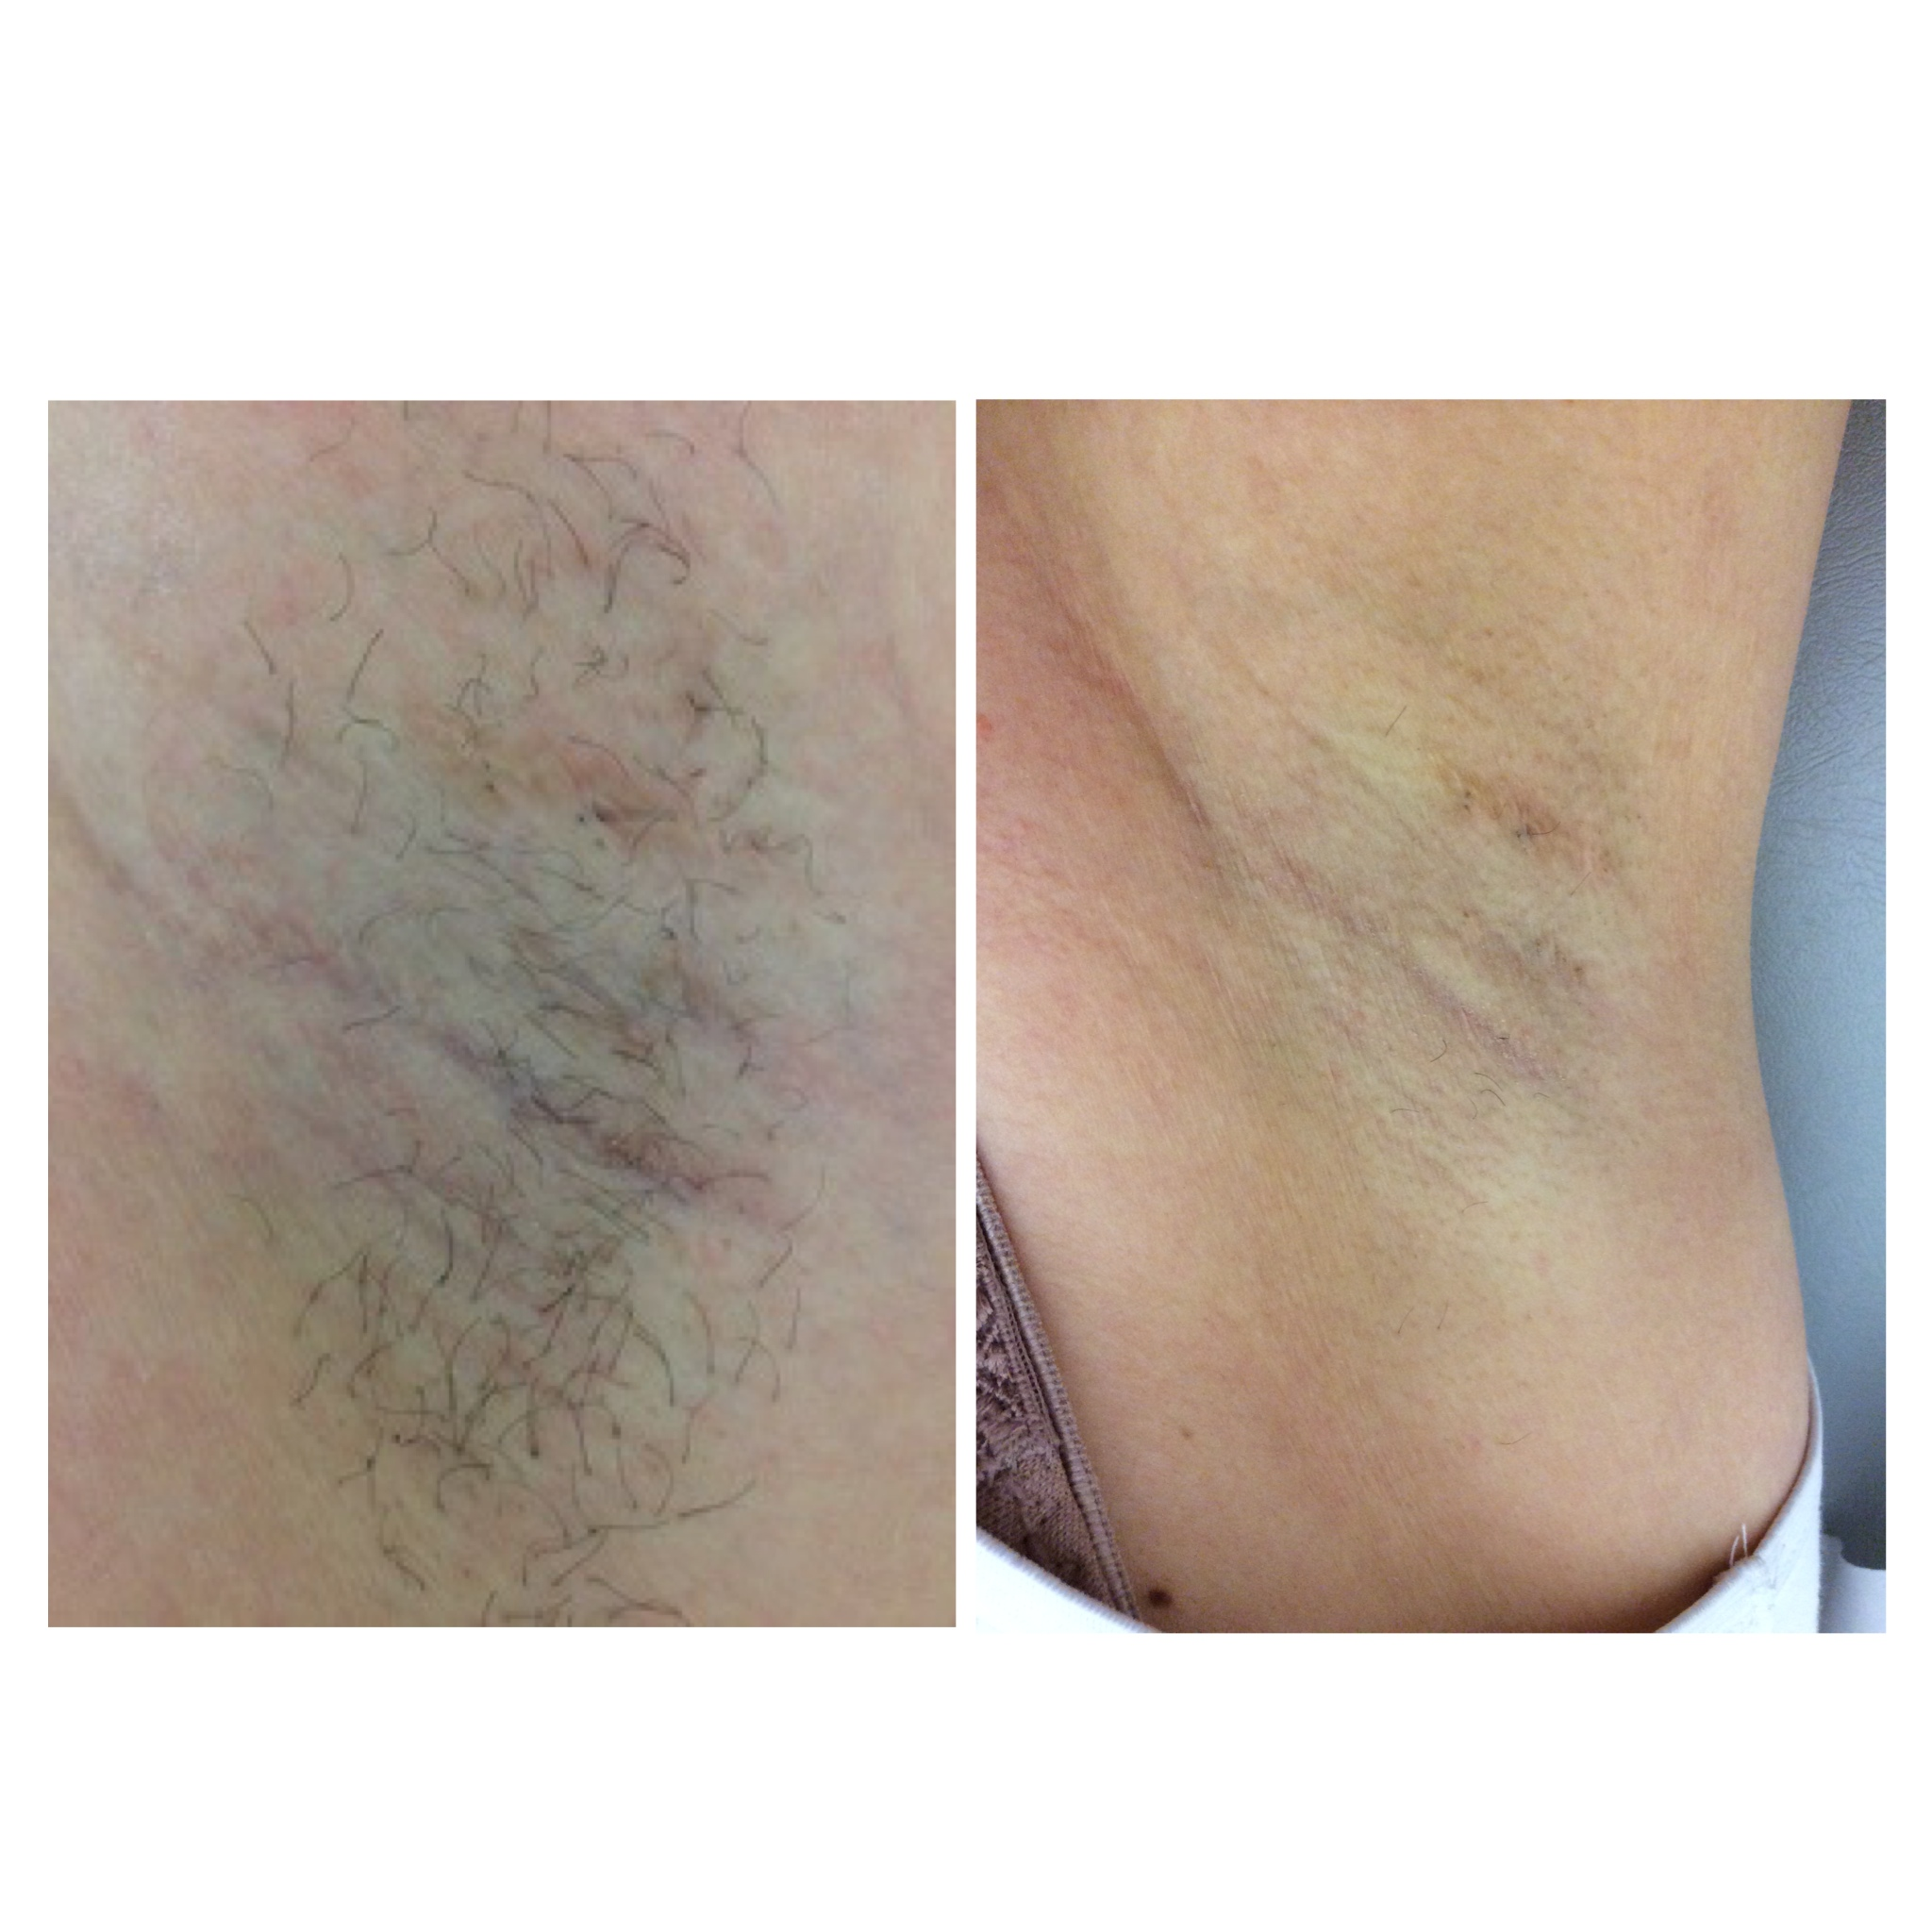 Bikini And Underarm Laser Ipl Hair Removal So Easy